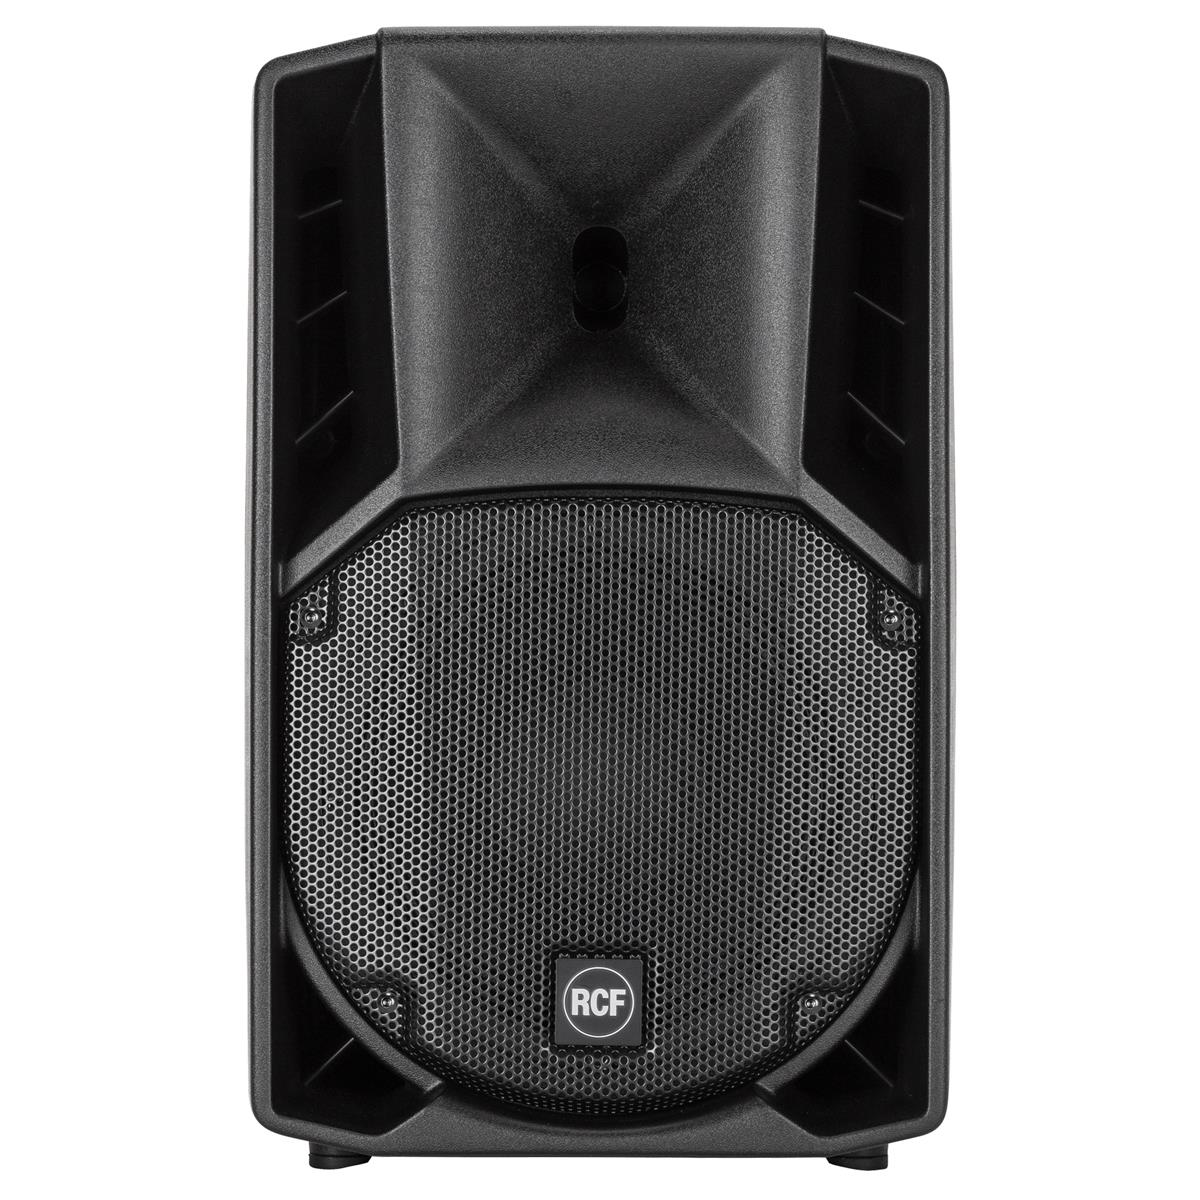 RCF Digital active speaker system 10in + 1in, 700Wrms, 1400W